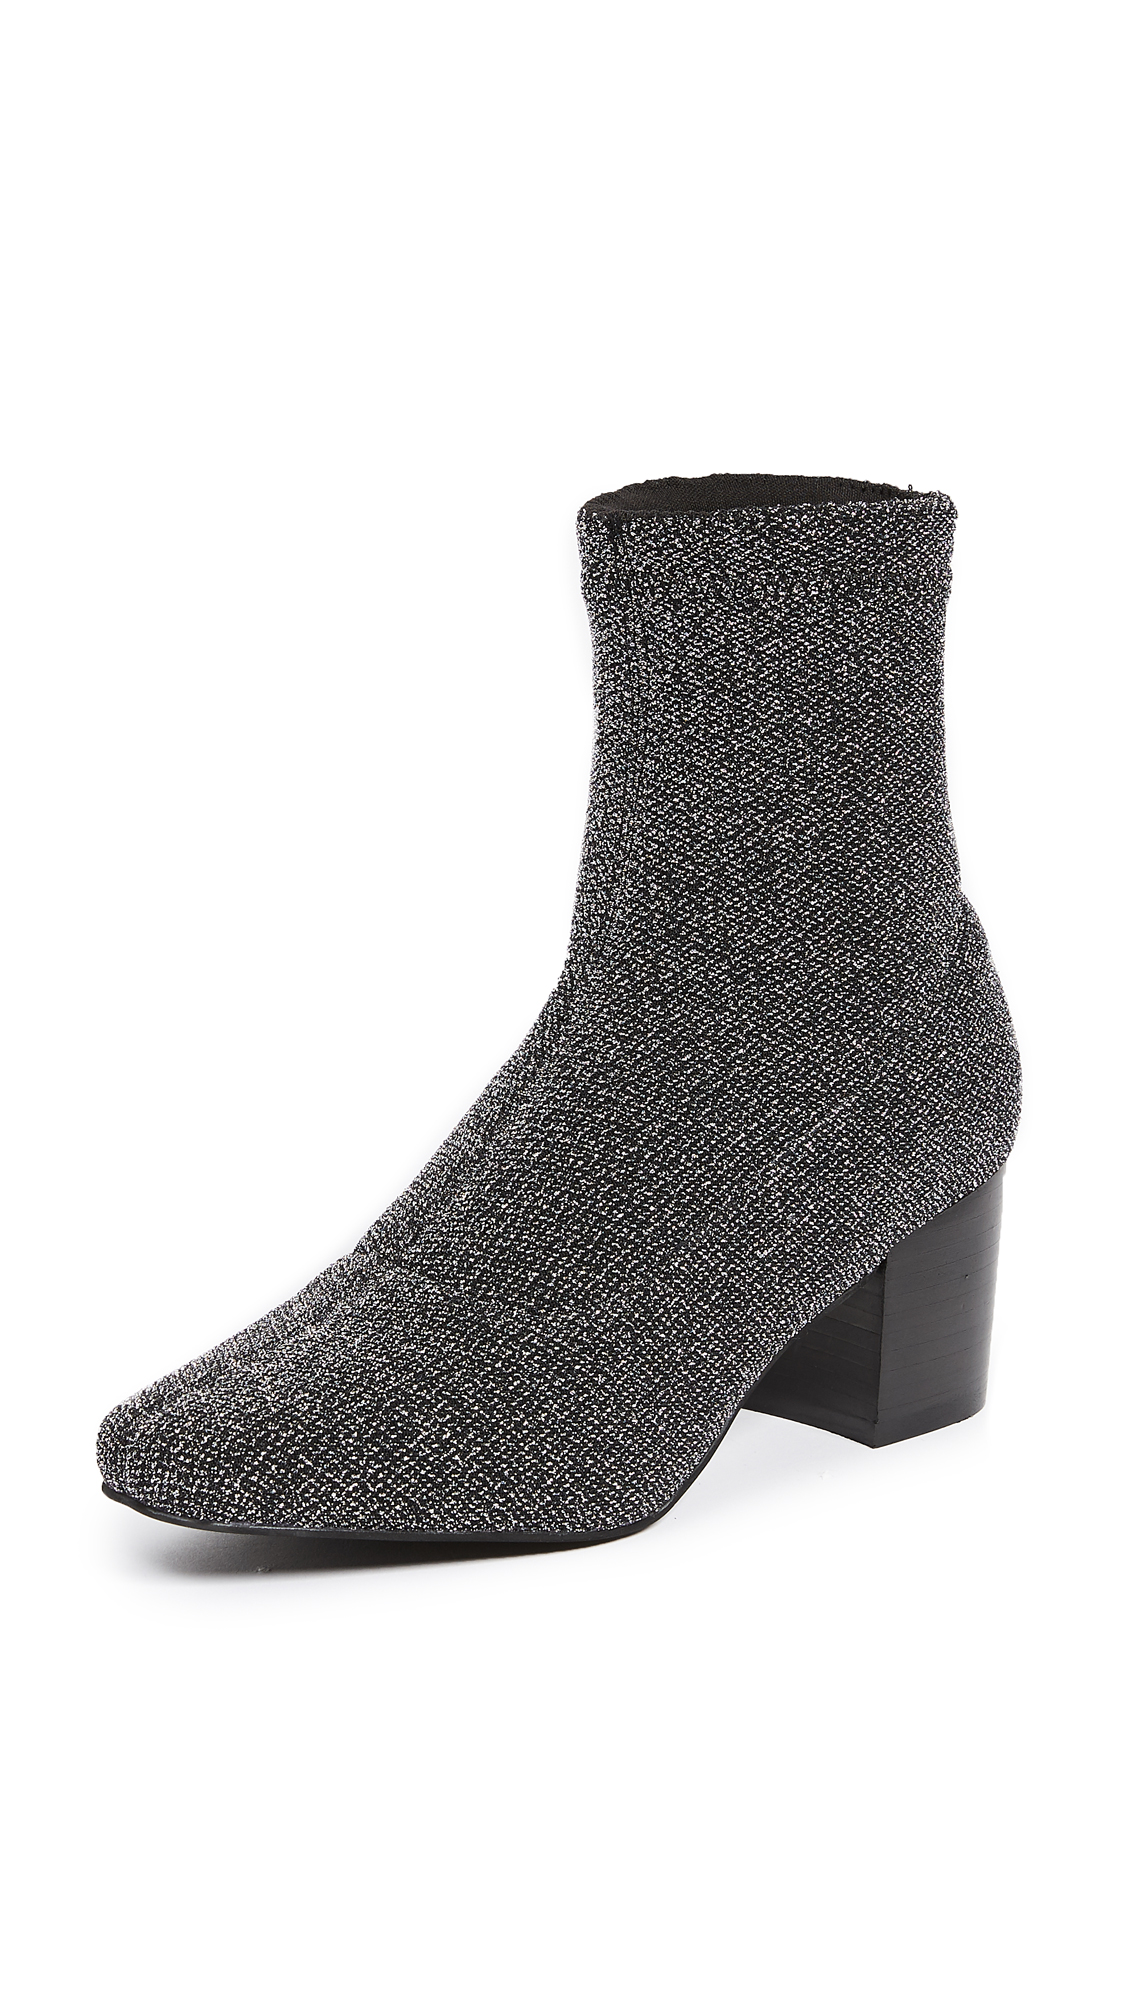 Sol Sana Comet Stretch Booties - Silver